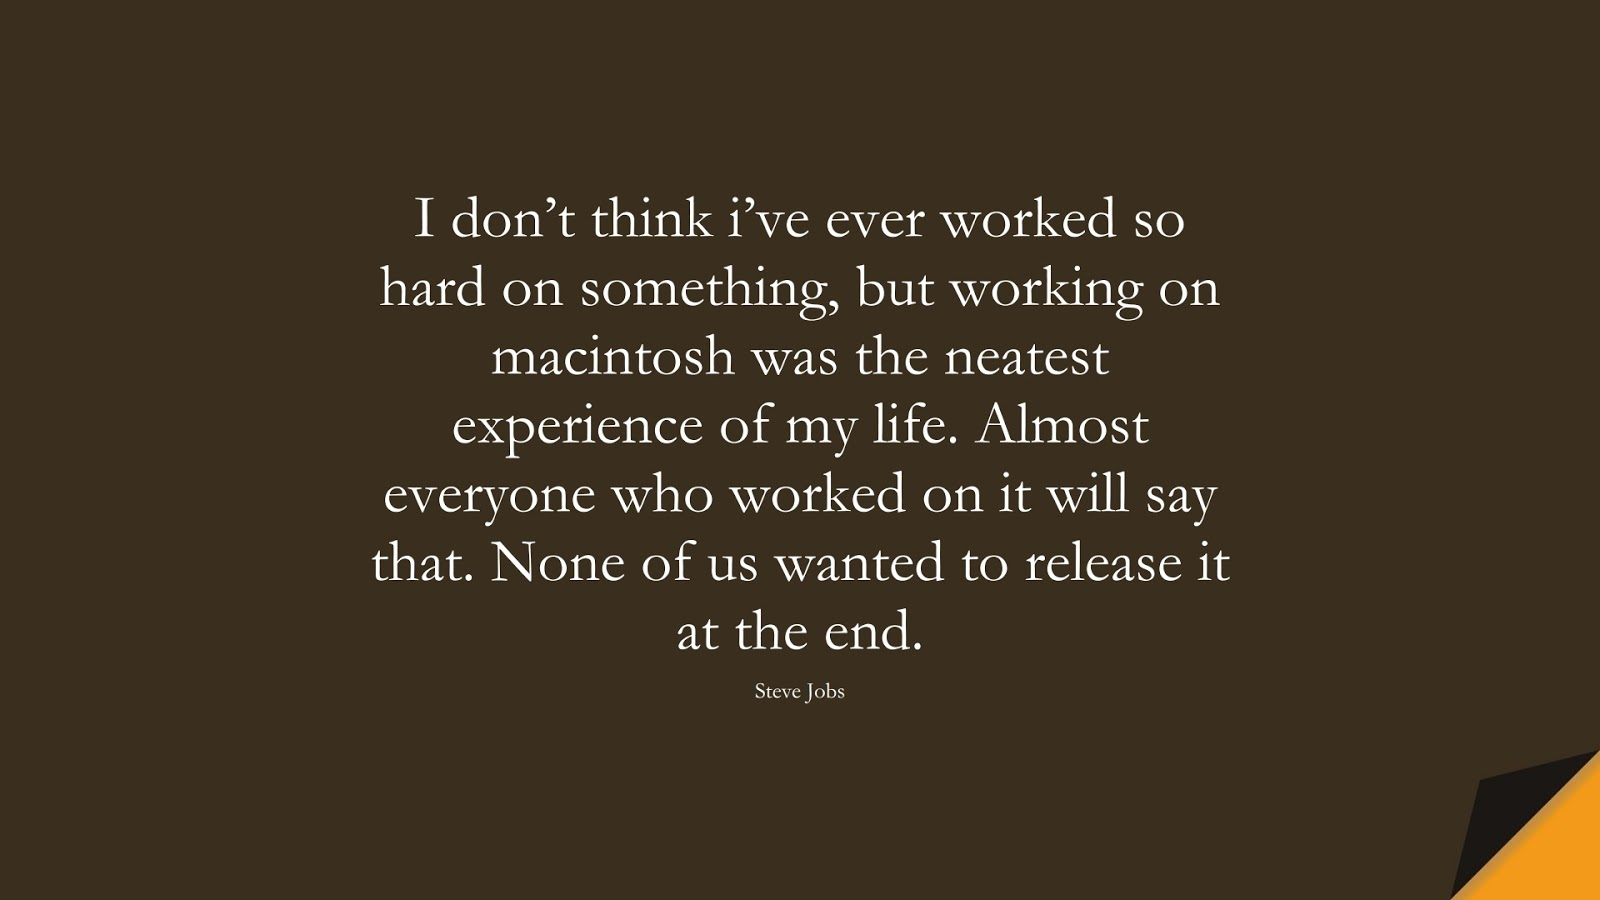 I don't think i've ever worked so hard on something, but working on macintosh was the neatest experience of my life. Almost everyone who worked on it will say that. None of us wanted to release it at the end. (Steve Jobs);  #SteveJobsQuotes